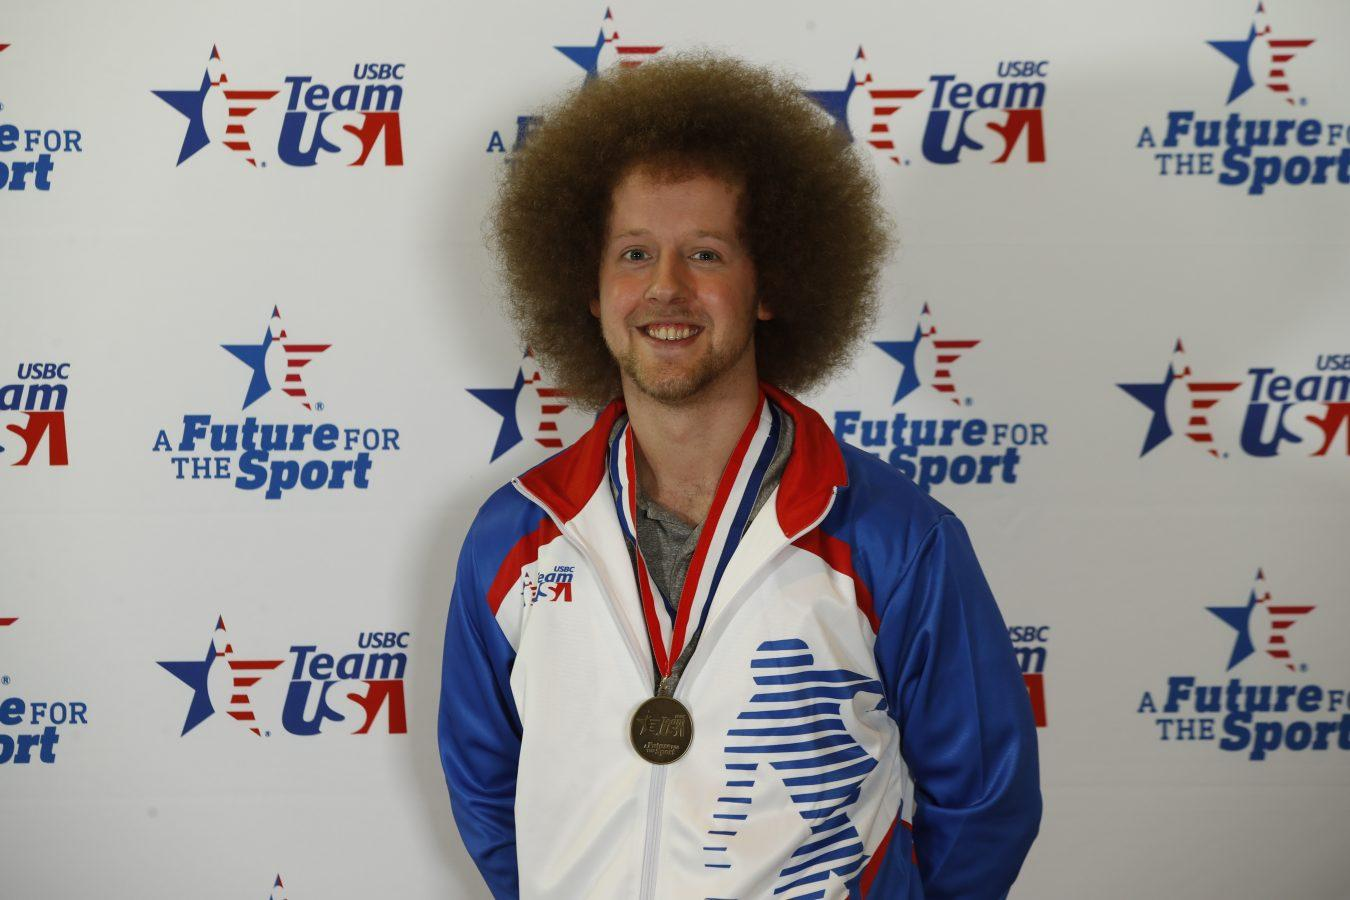 07 January 2018 - USBC Team USA Trials and U.S. Amateur Championships in Las Vegas, NV (Photo by Gregg Ellman)